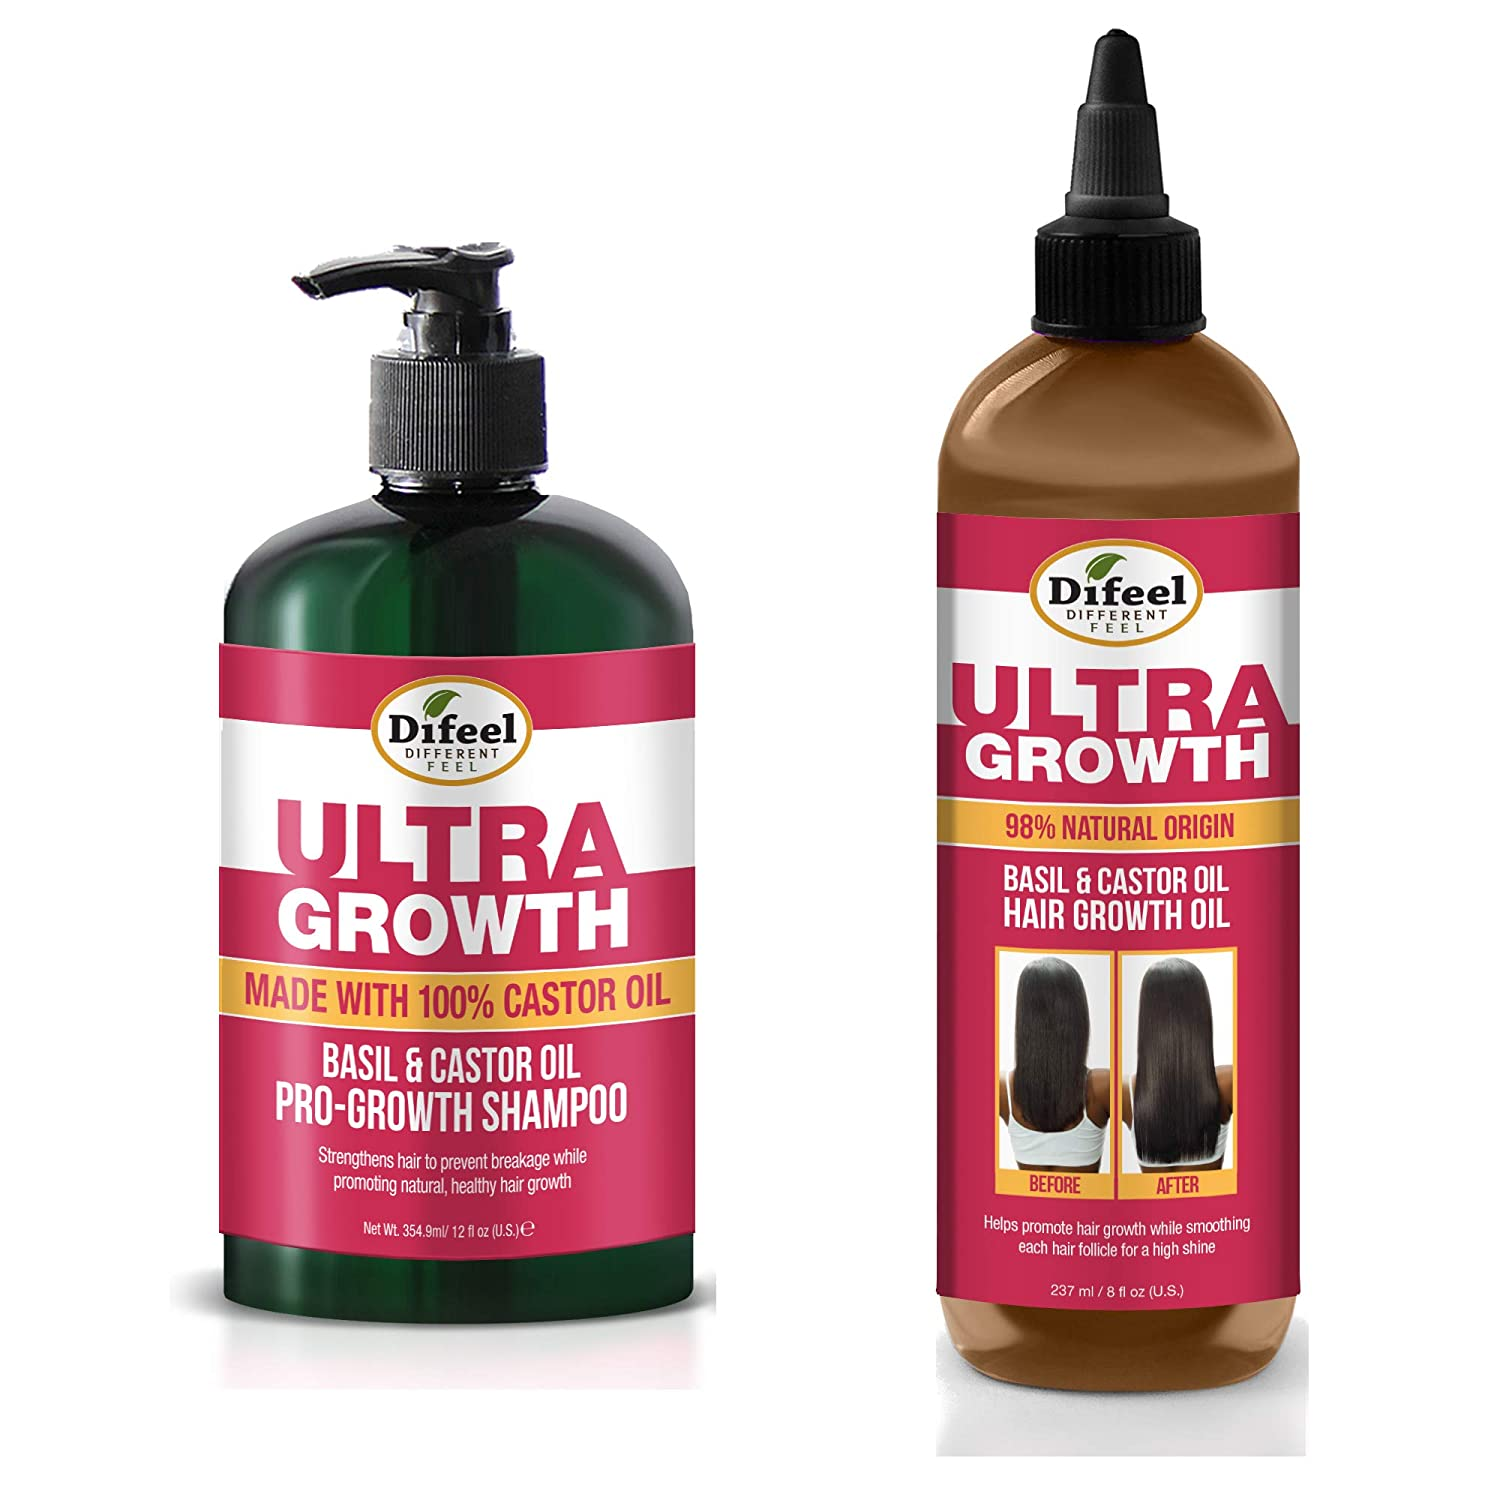 Difeel Ultra Growth Shampoo Hair Includes 2-PC Set - New Over item handling Orleans Mall Oil